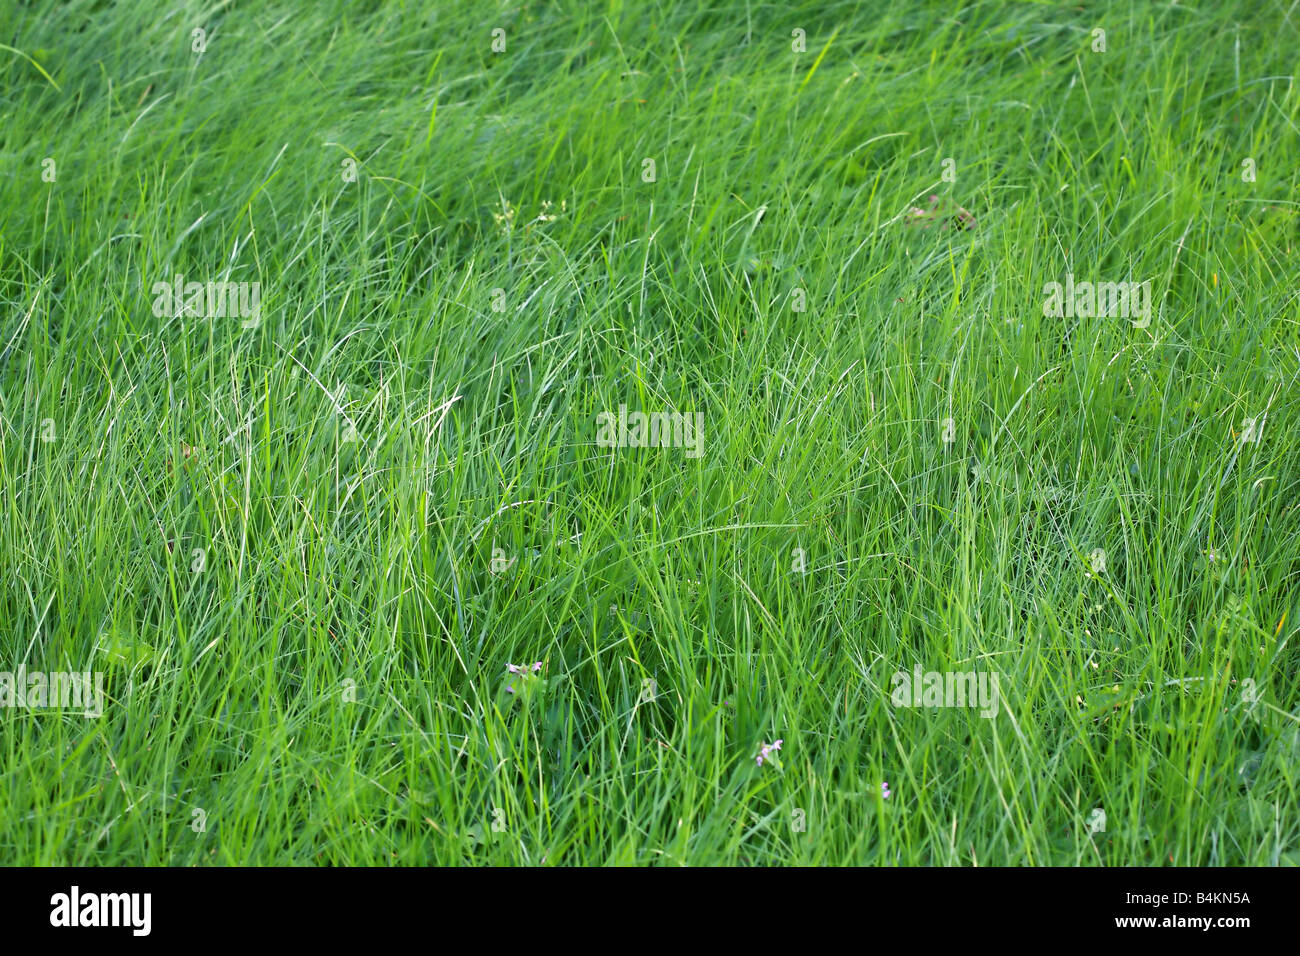 Fresh green grass on a lawn as a background - Stock Image